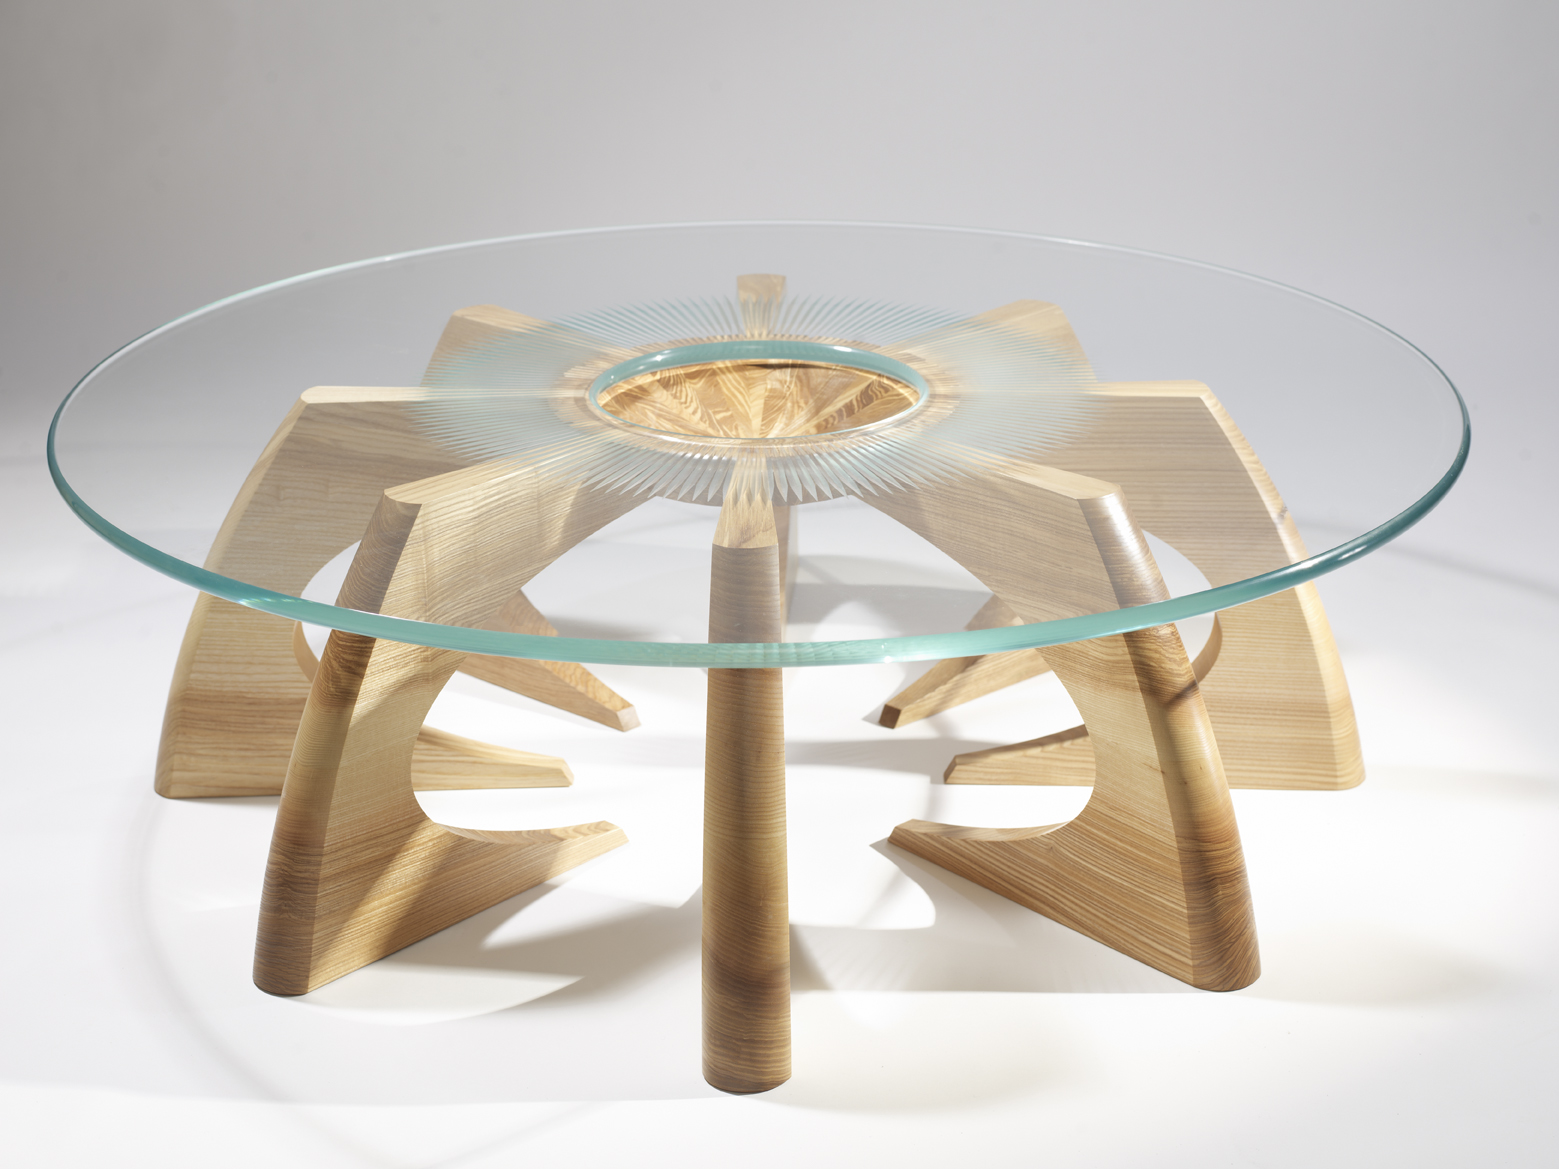 interior house design a minimalist table but can produce